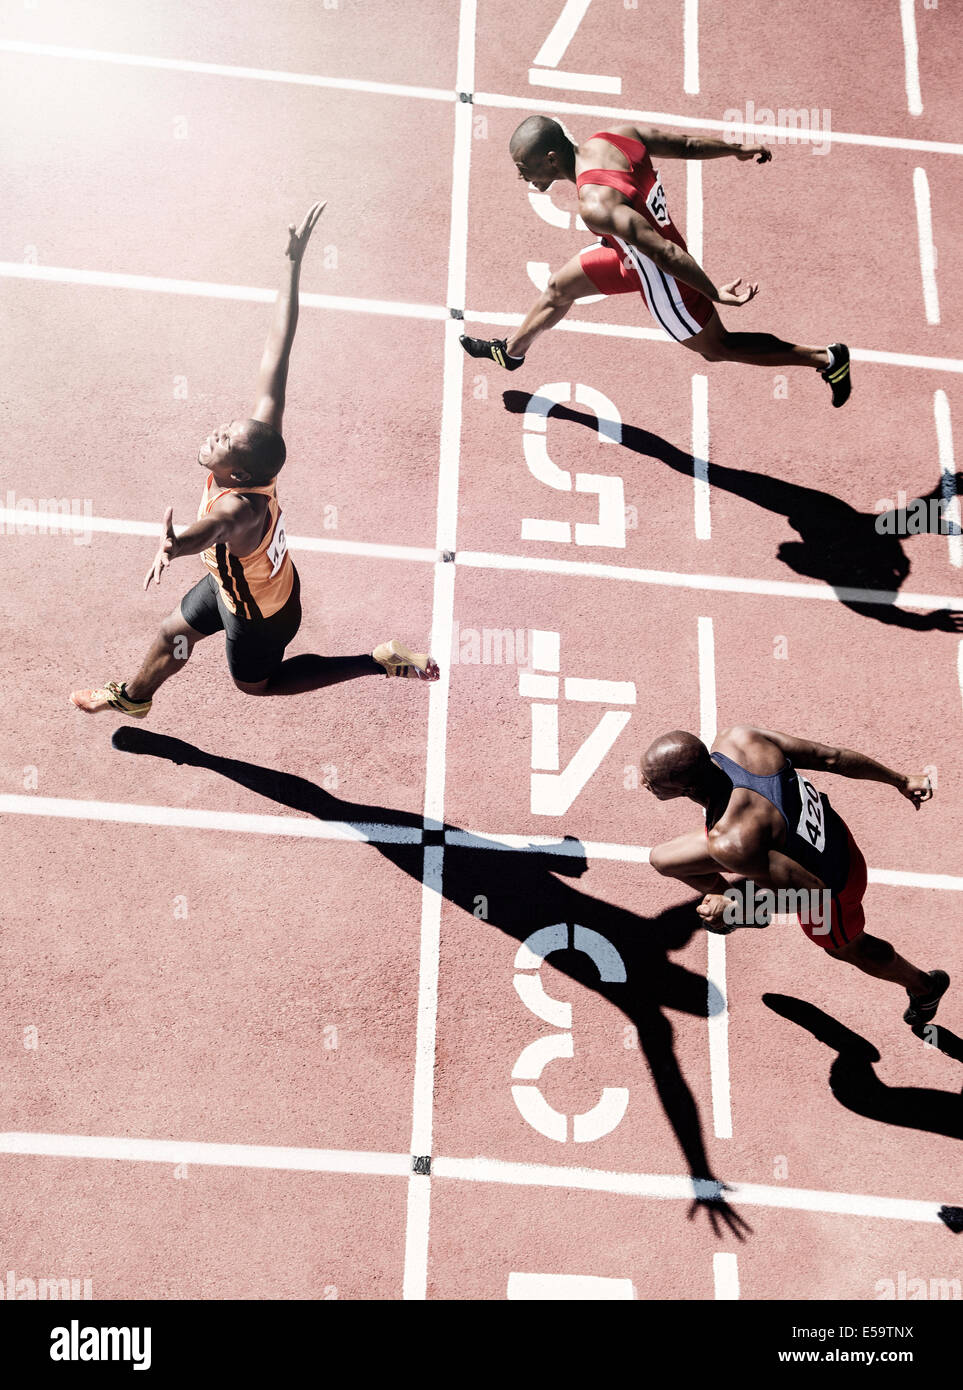 Runners crossing finish line - Stock Image